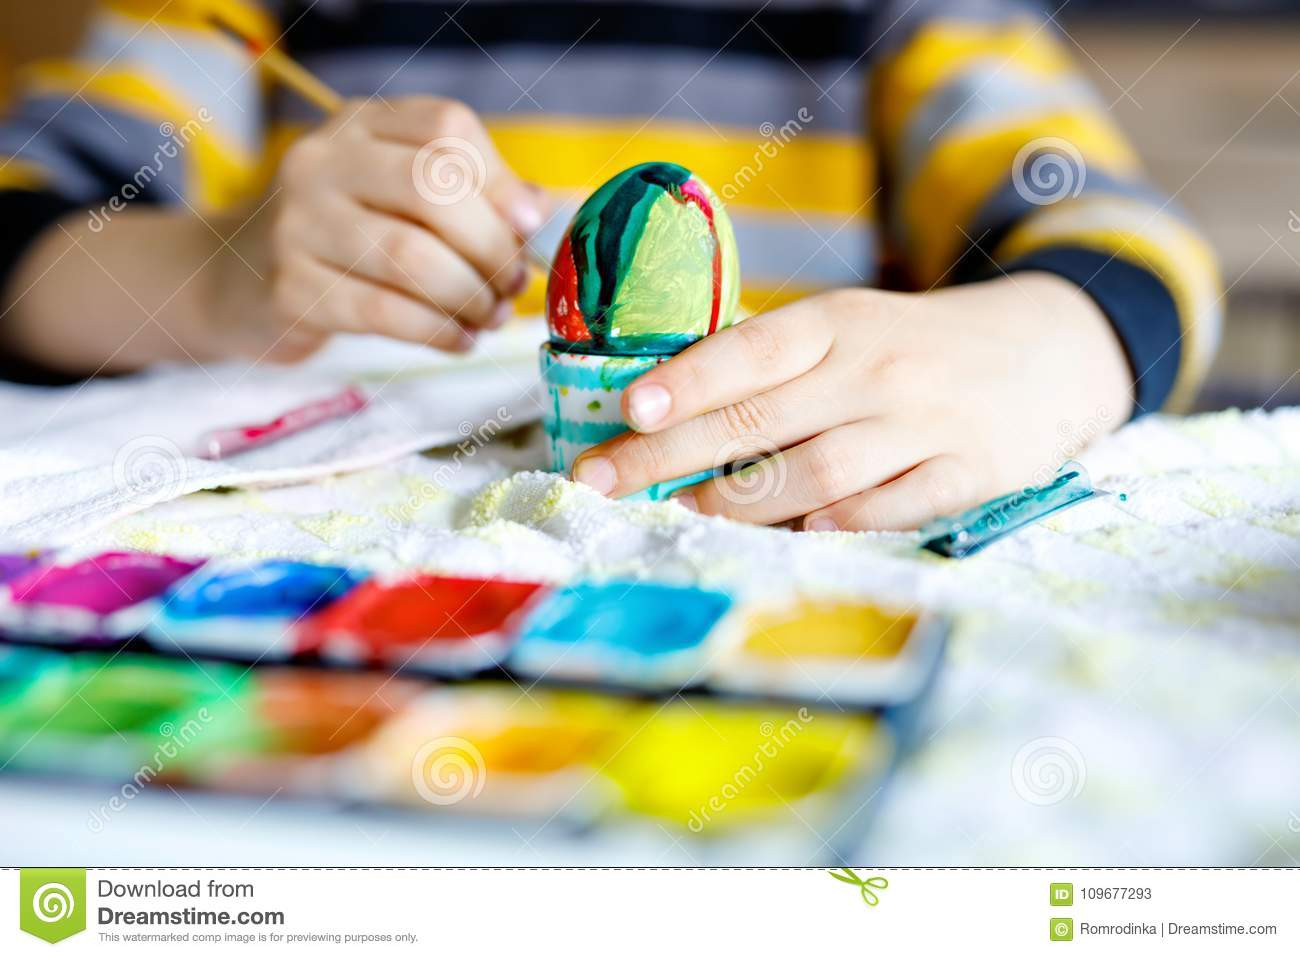 Close-up of little kid hands coloring eggs for Easter holiday